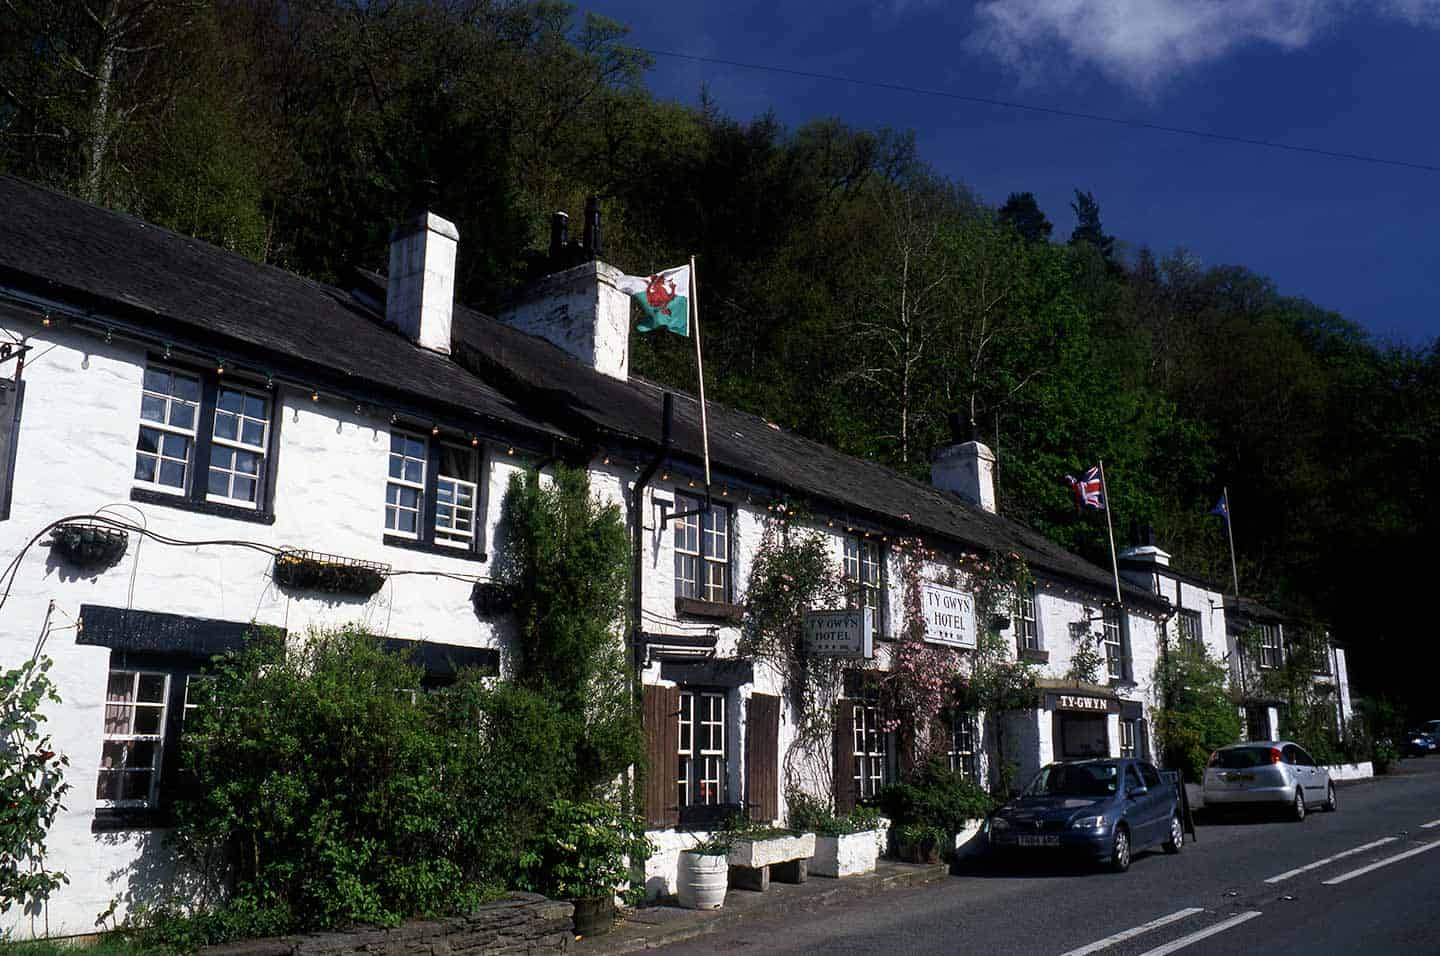 Image of the Tŷ Gwyn hotel in Betws-y-Coed